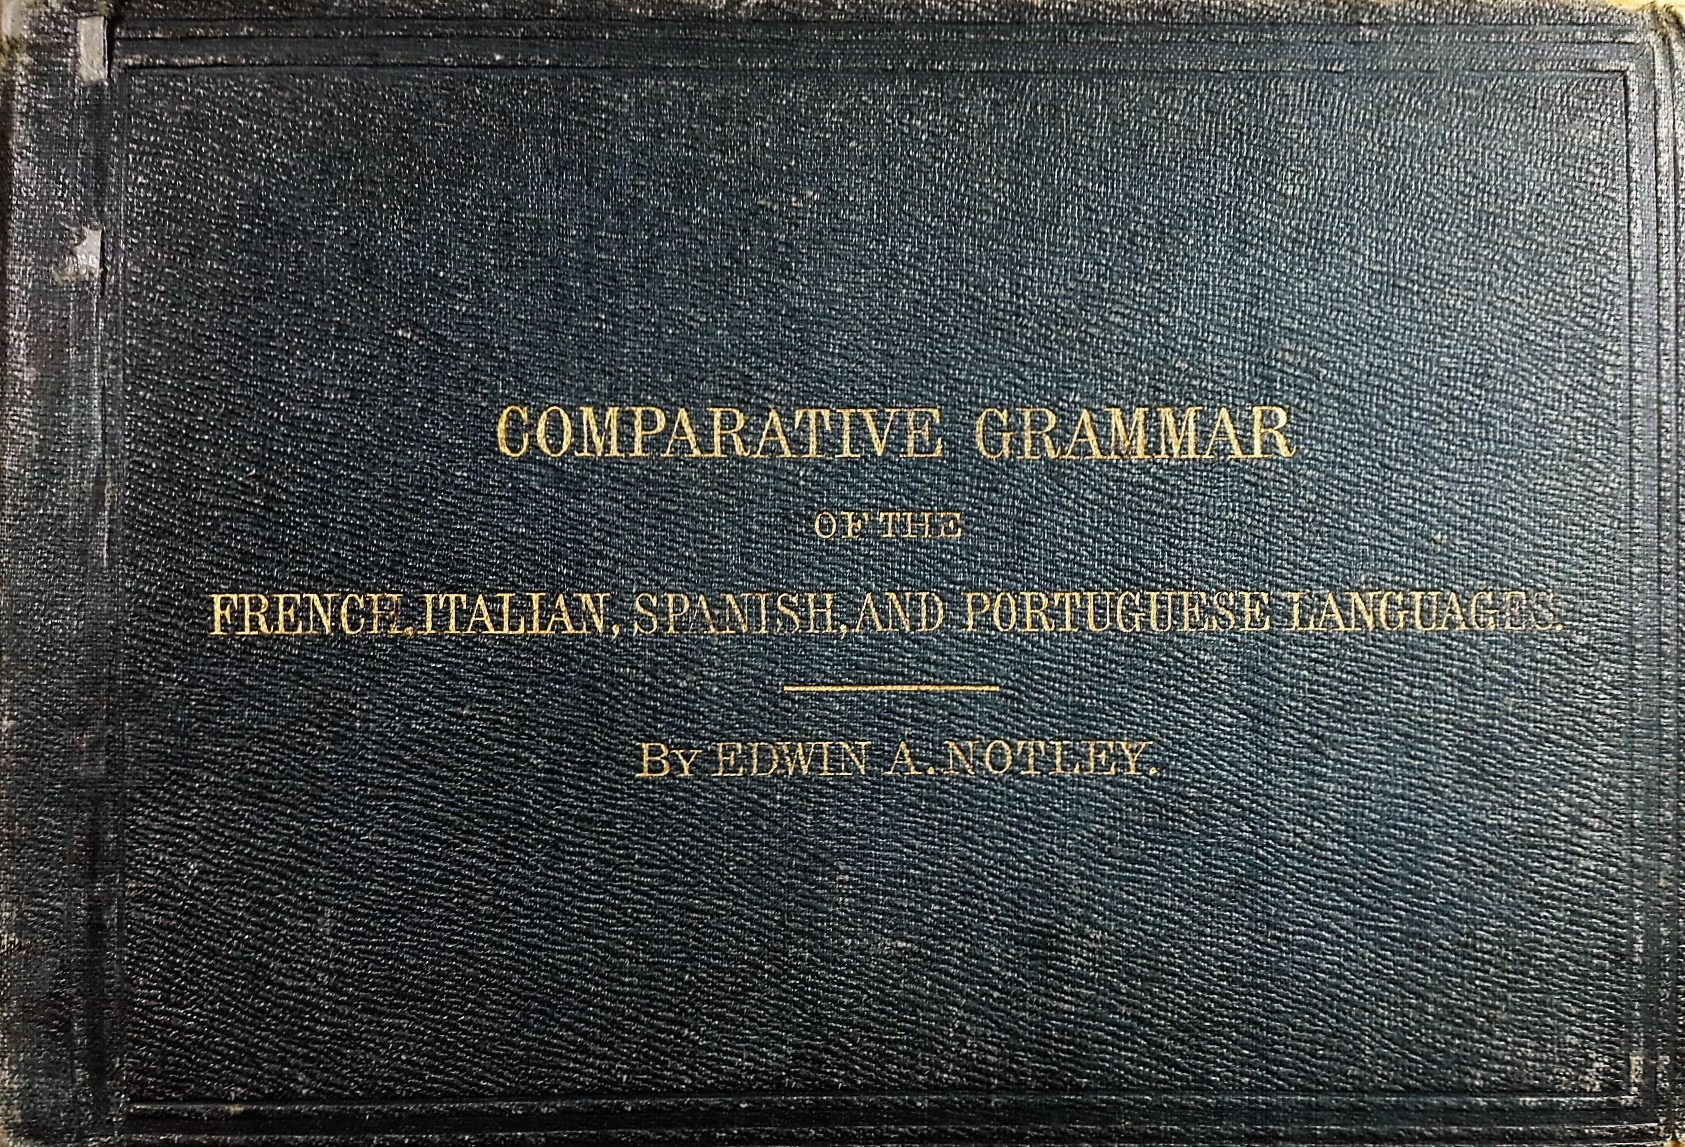 Comparative Grammar of the French, Italian, Spanish and Portuguese Languages